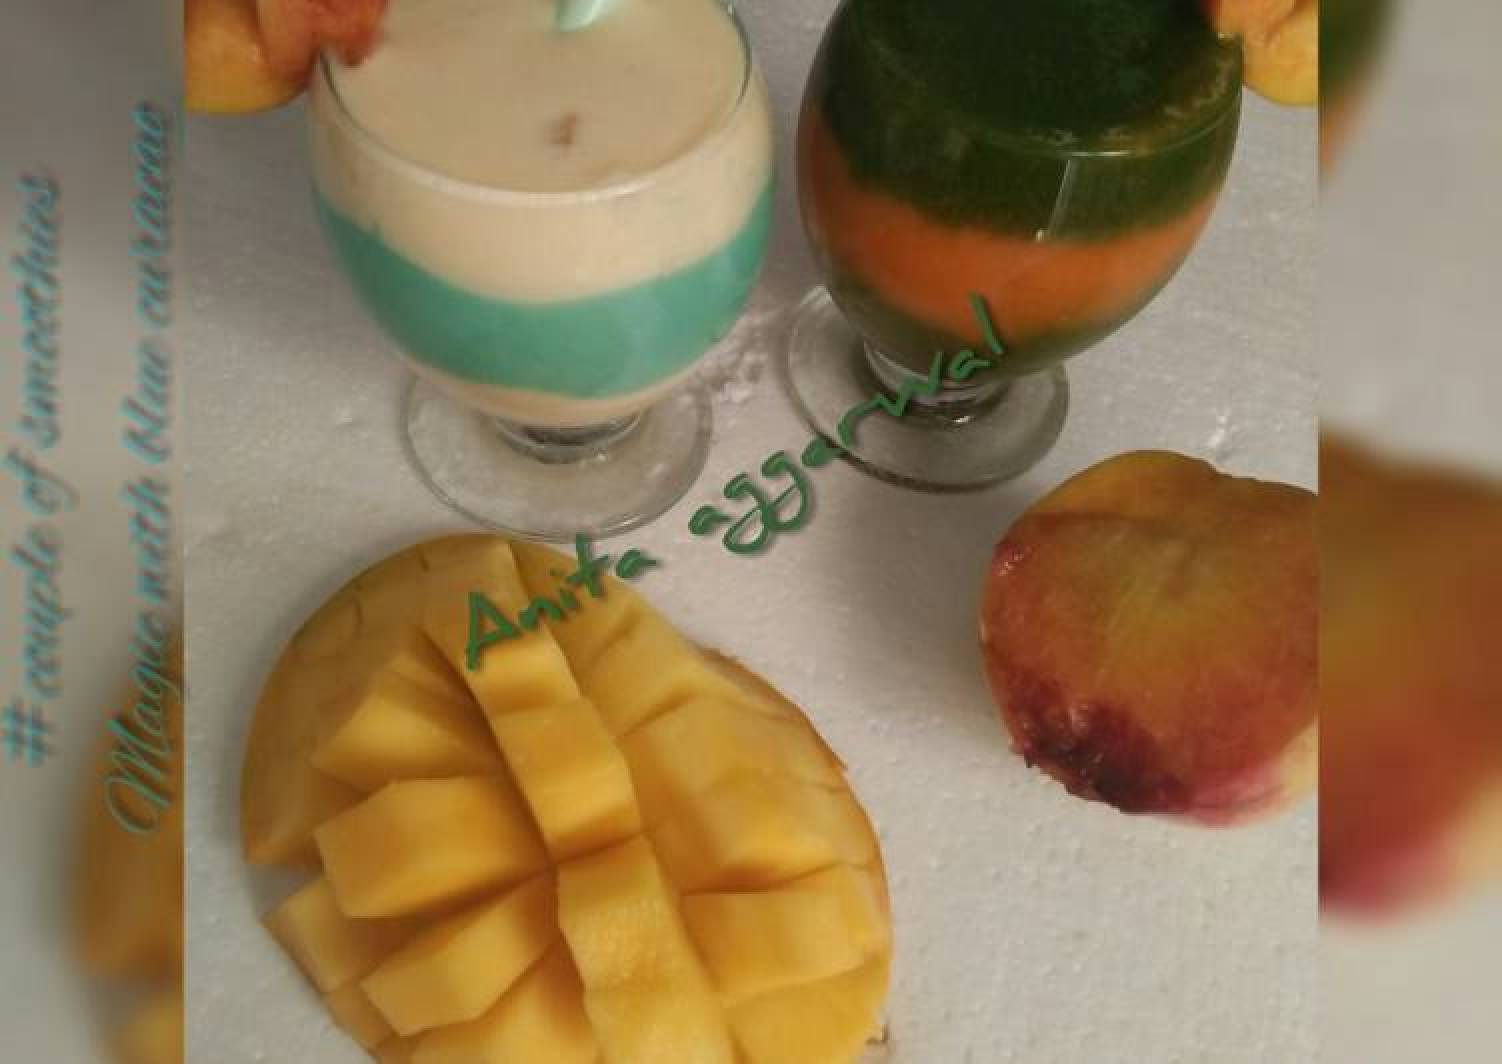 A couple of smoothies#magic with blue curacao syrup